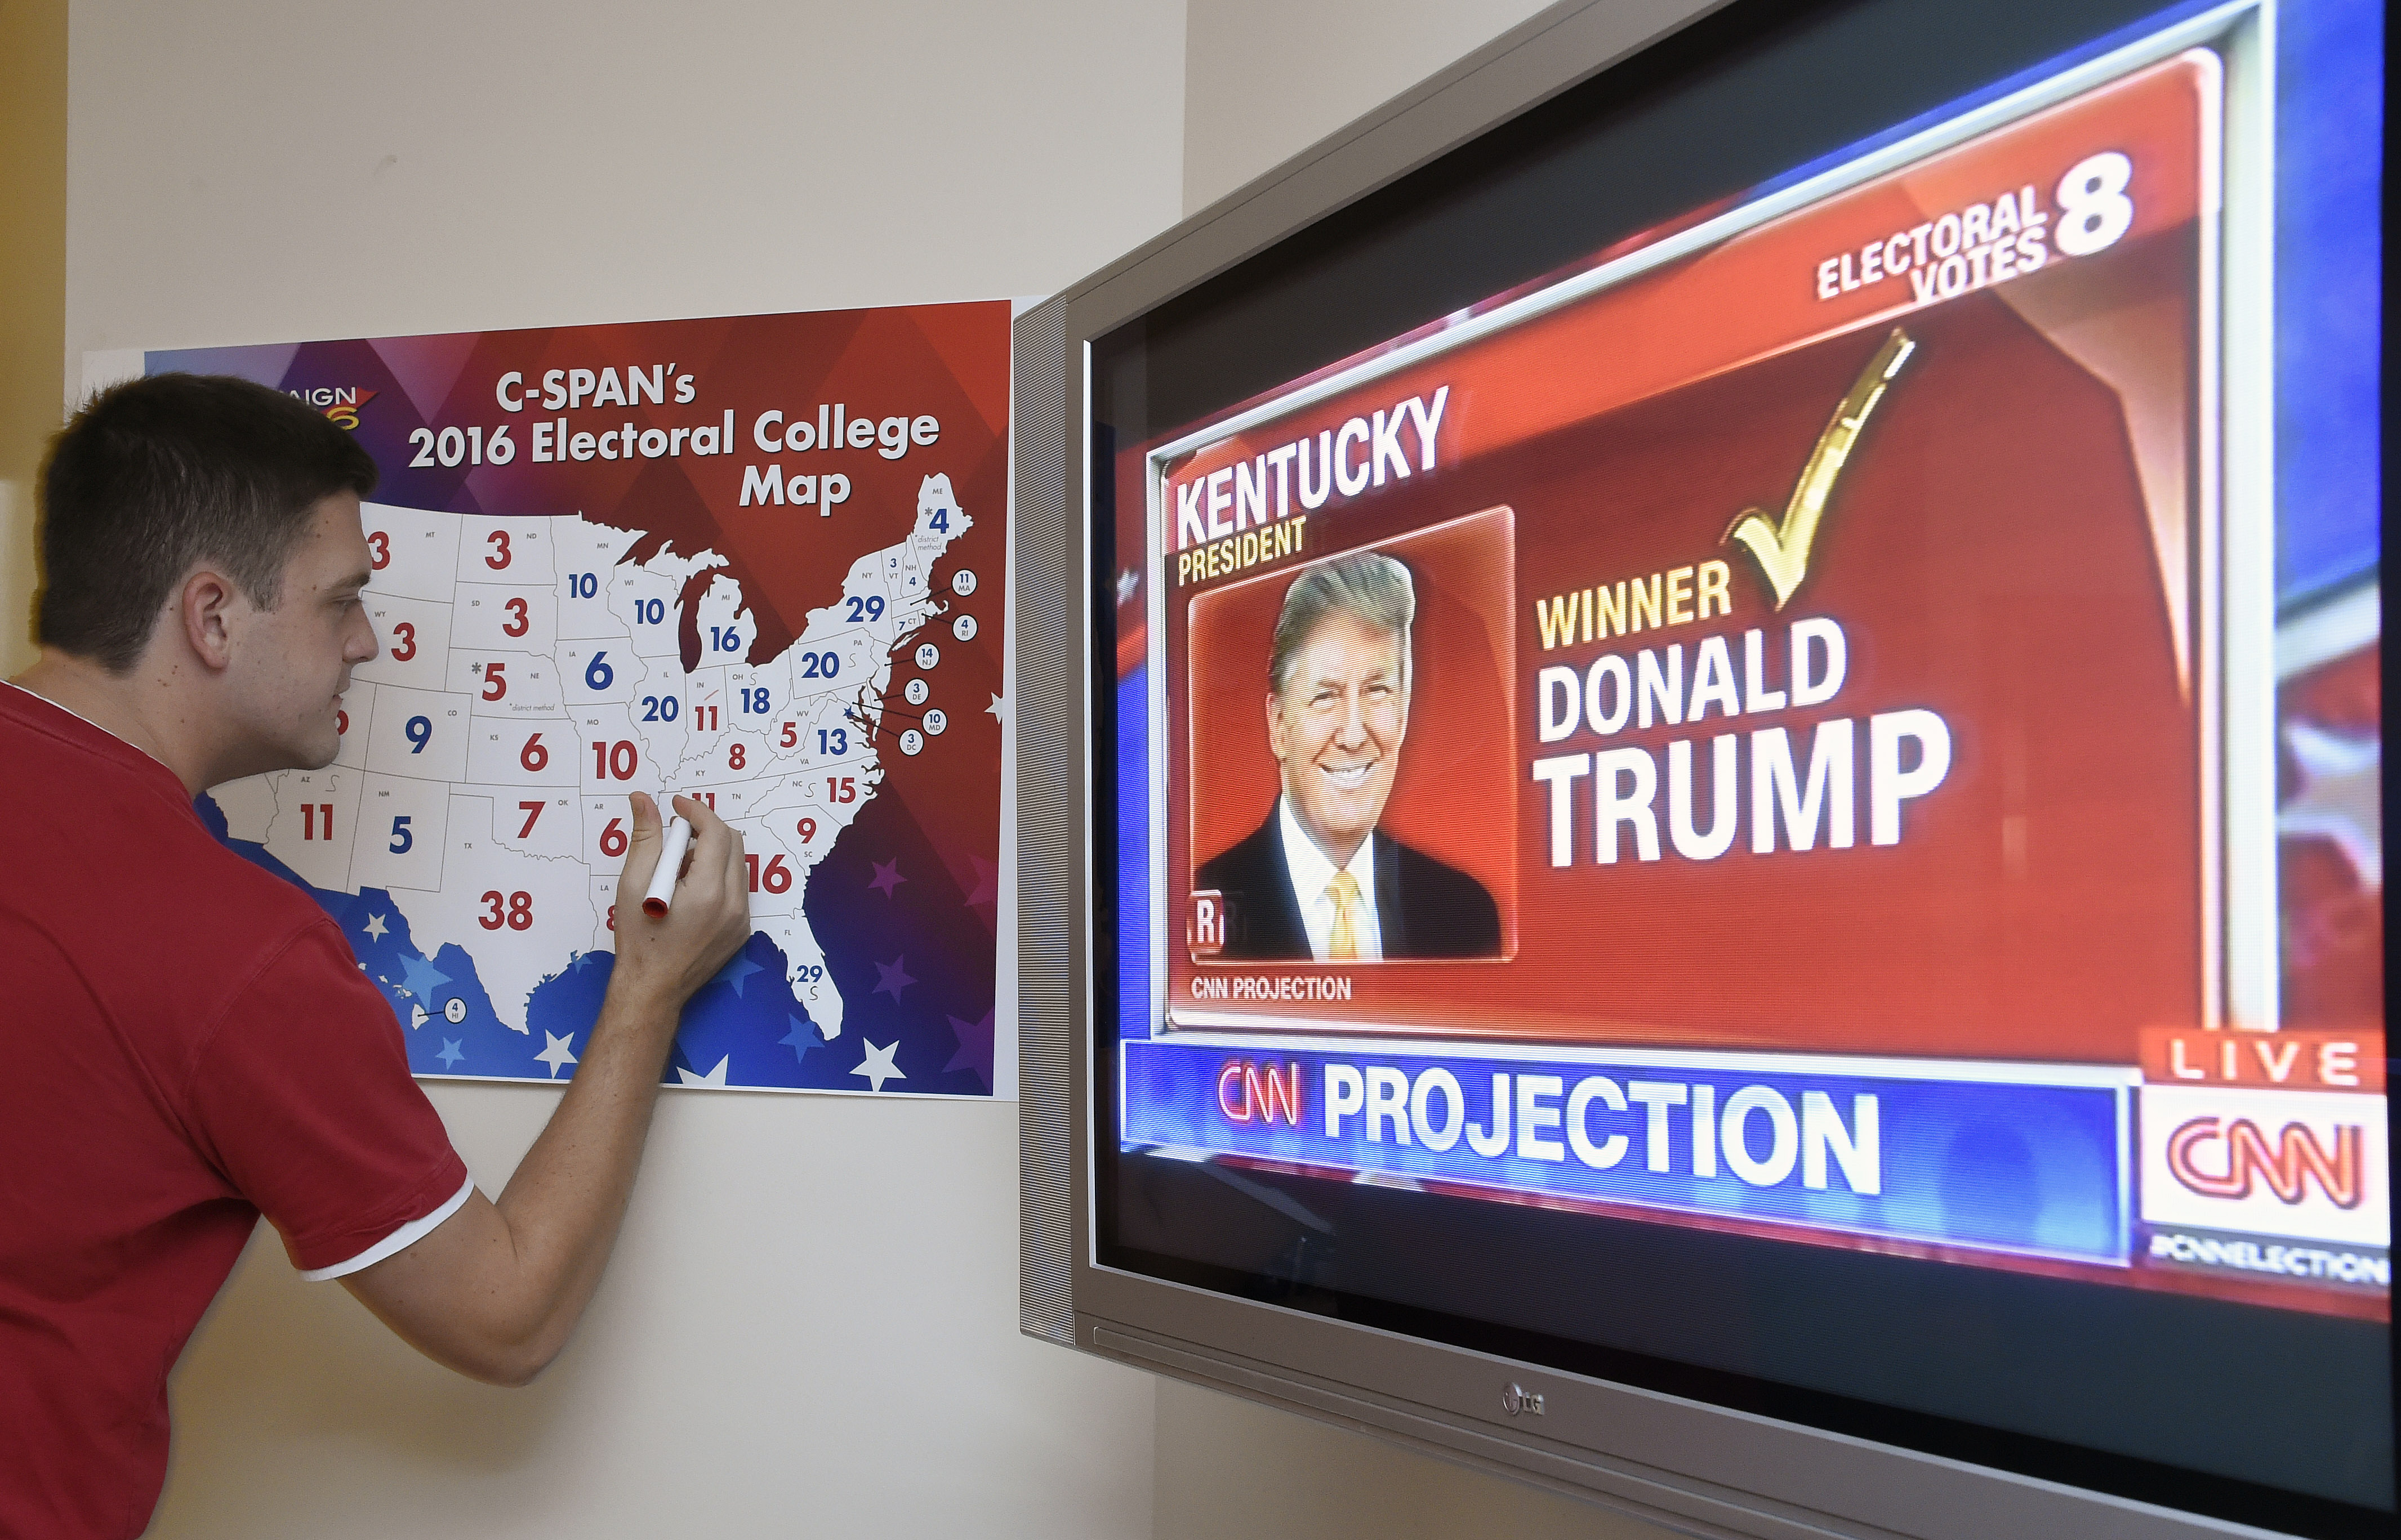 An electoral map is colored as states are projected for Donald Trump at an election watching party in Coconut Grove, Florida.